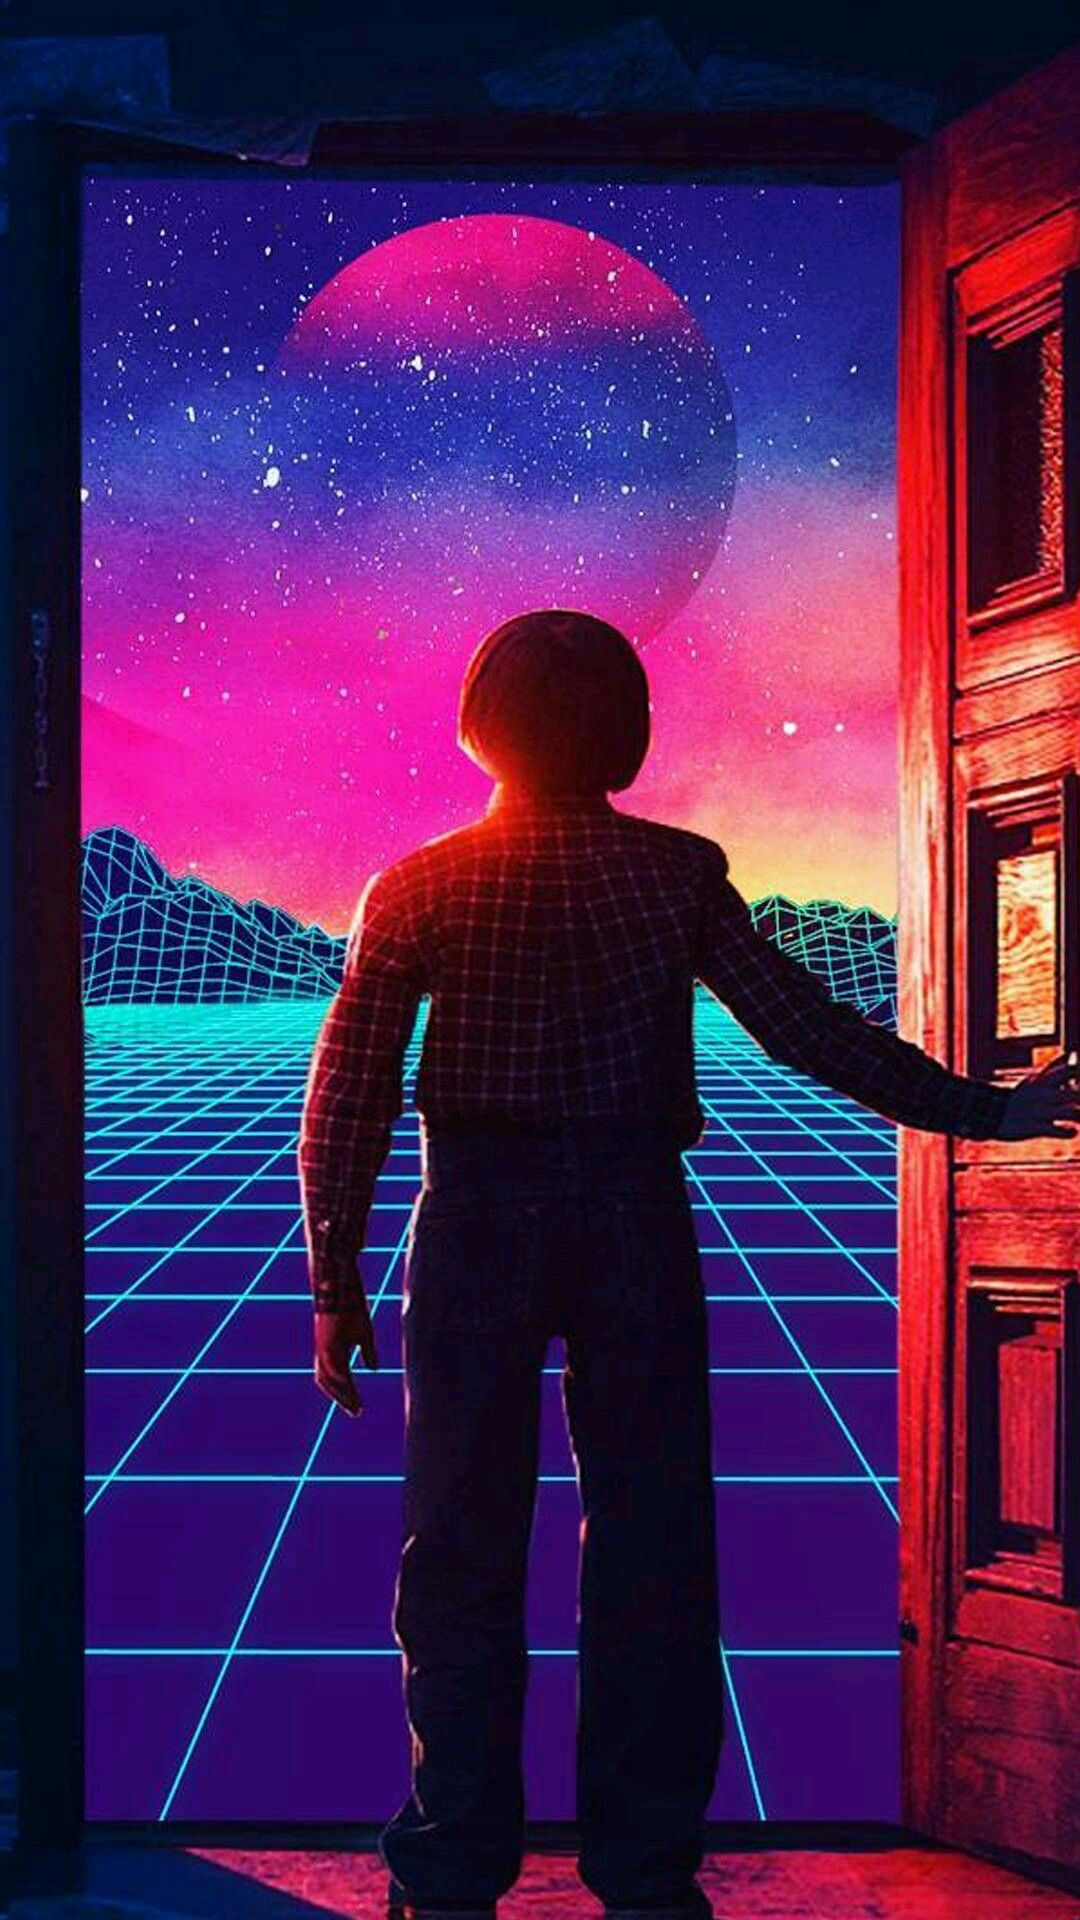 Pin by Ff on Wall-P | Stranger things aesthetic, Vaporwave ...